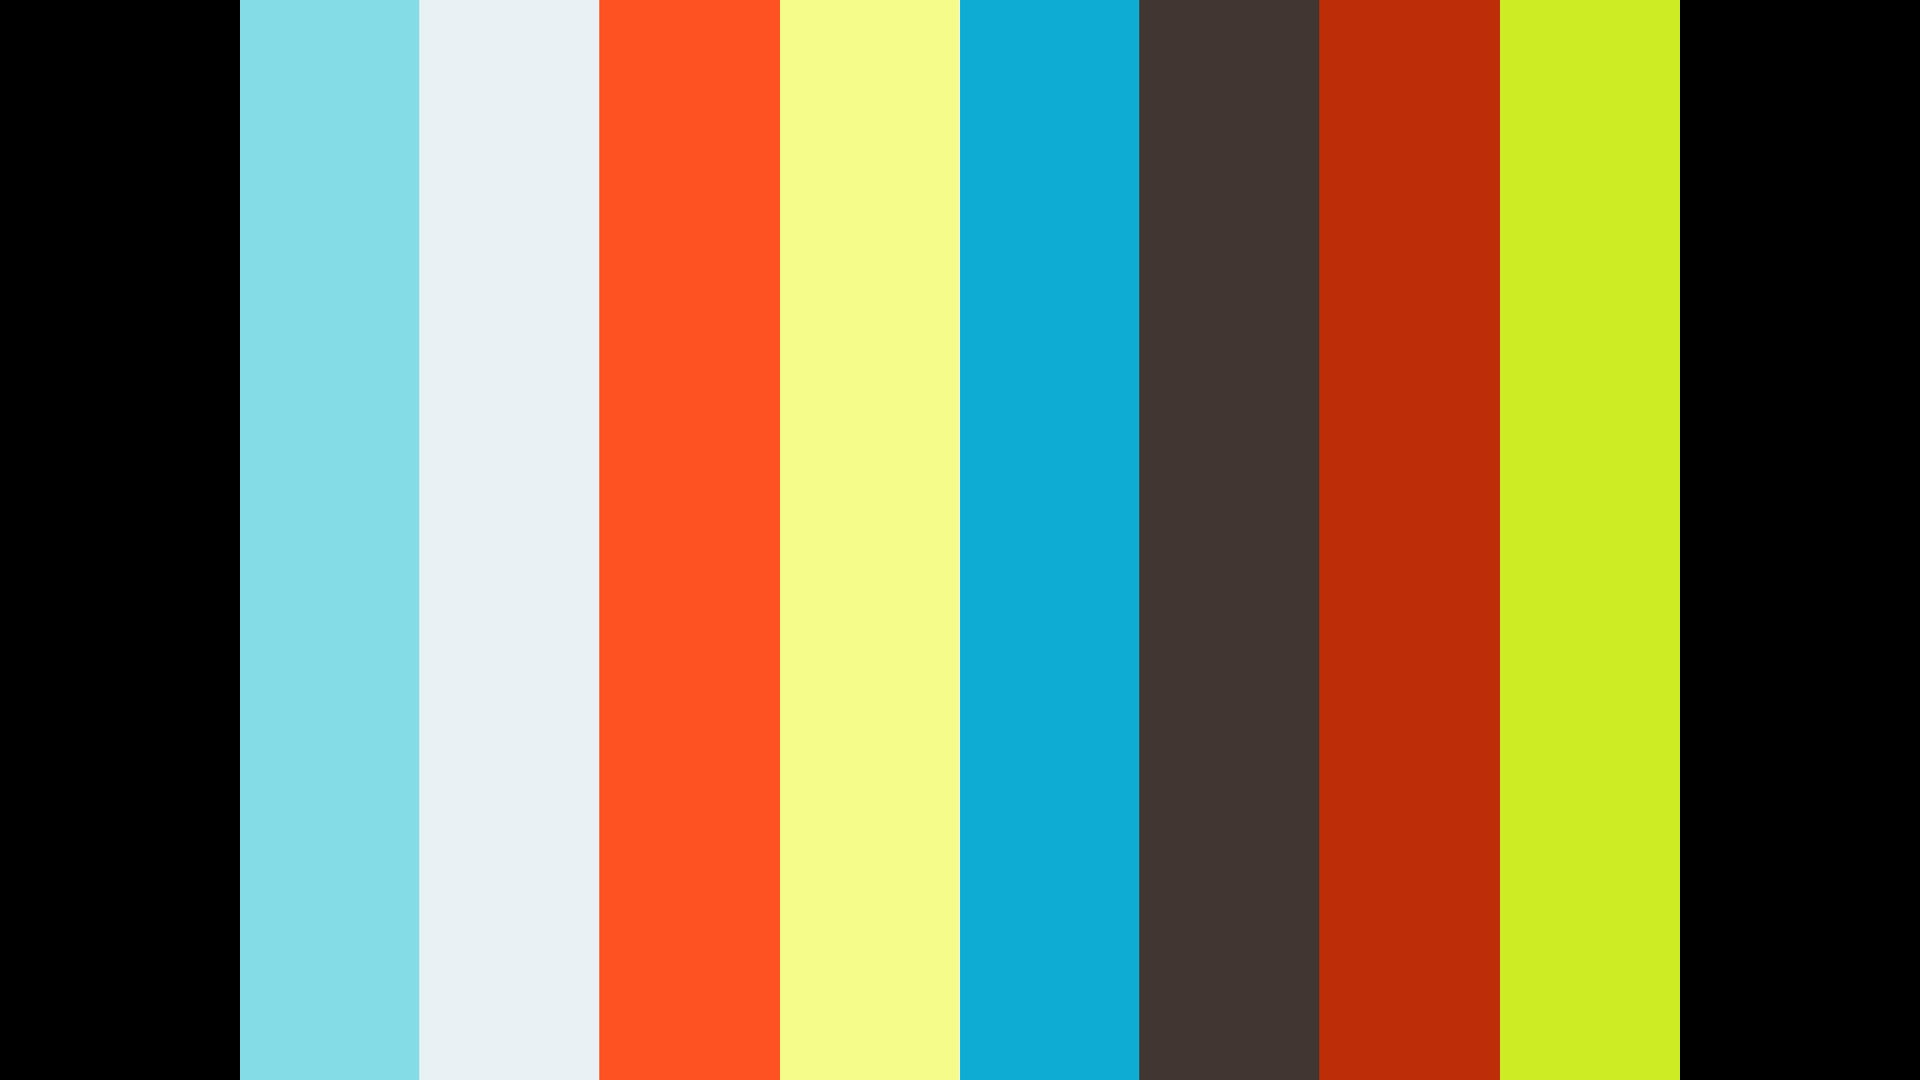 Go FINISH 2020 - Angel Marcial